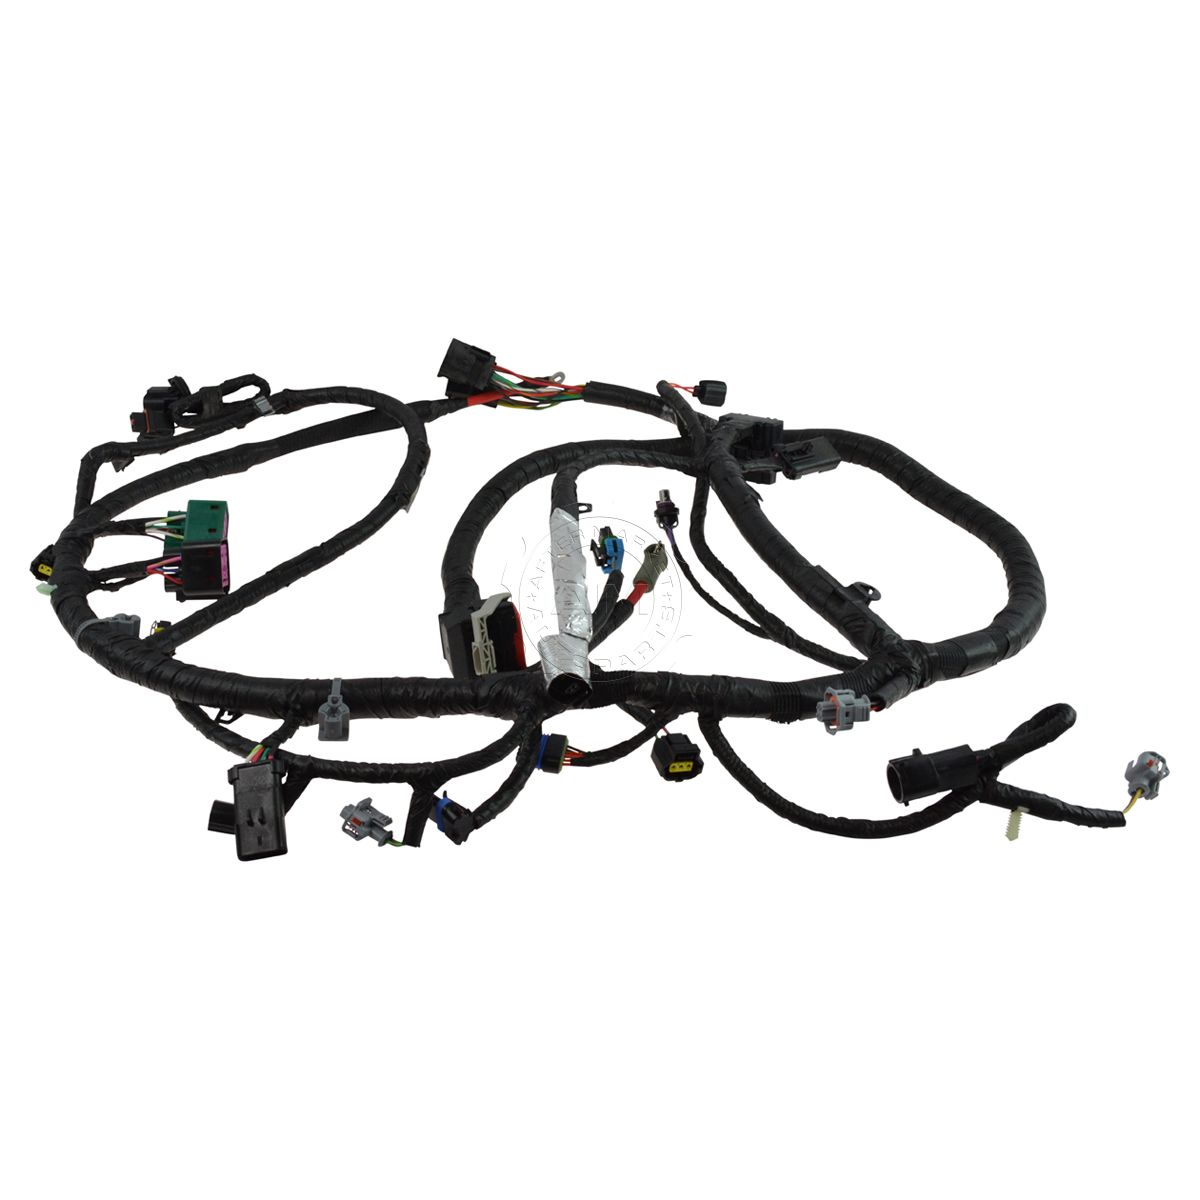 hight resolution of oem diesel engine wiring harness for 04 ford f250 f350 f450 04 05 excursion 6 0